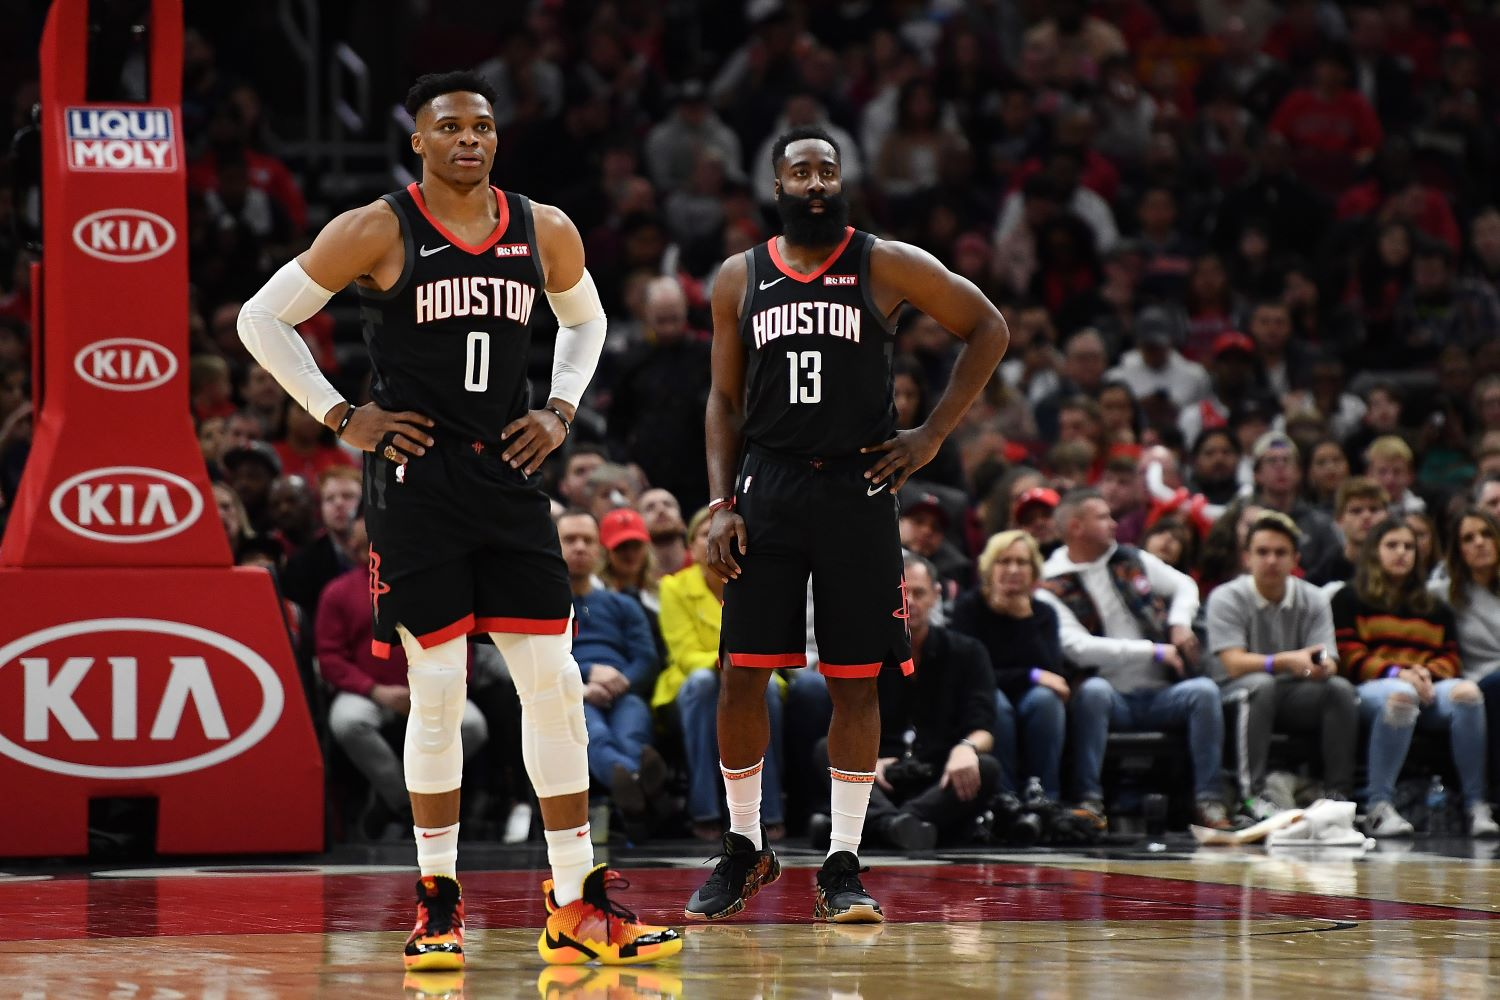 The Houston Rockets are going to lose James Harden and Russell Westbrook over a foolish mistake that could have easily been avoided.